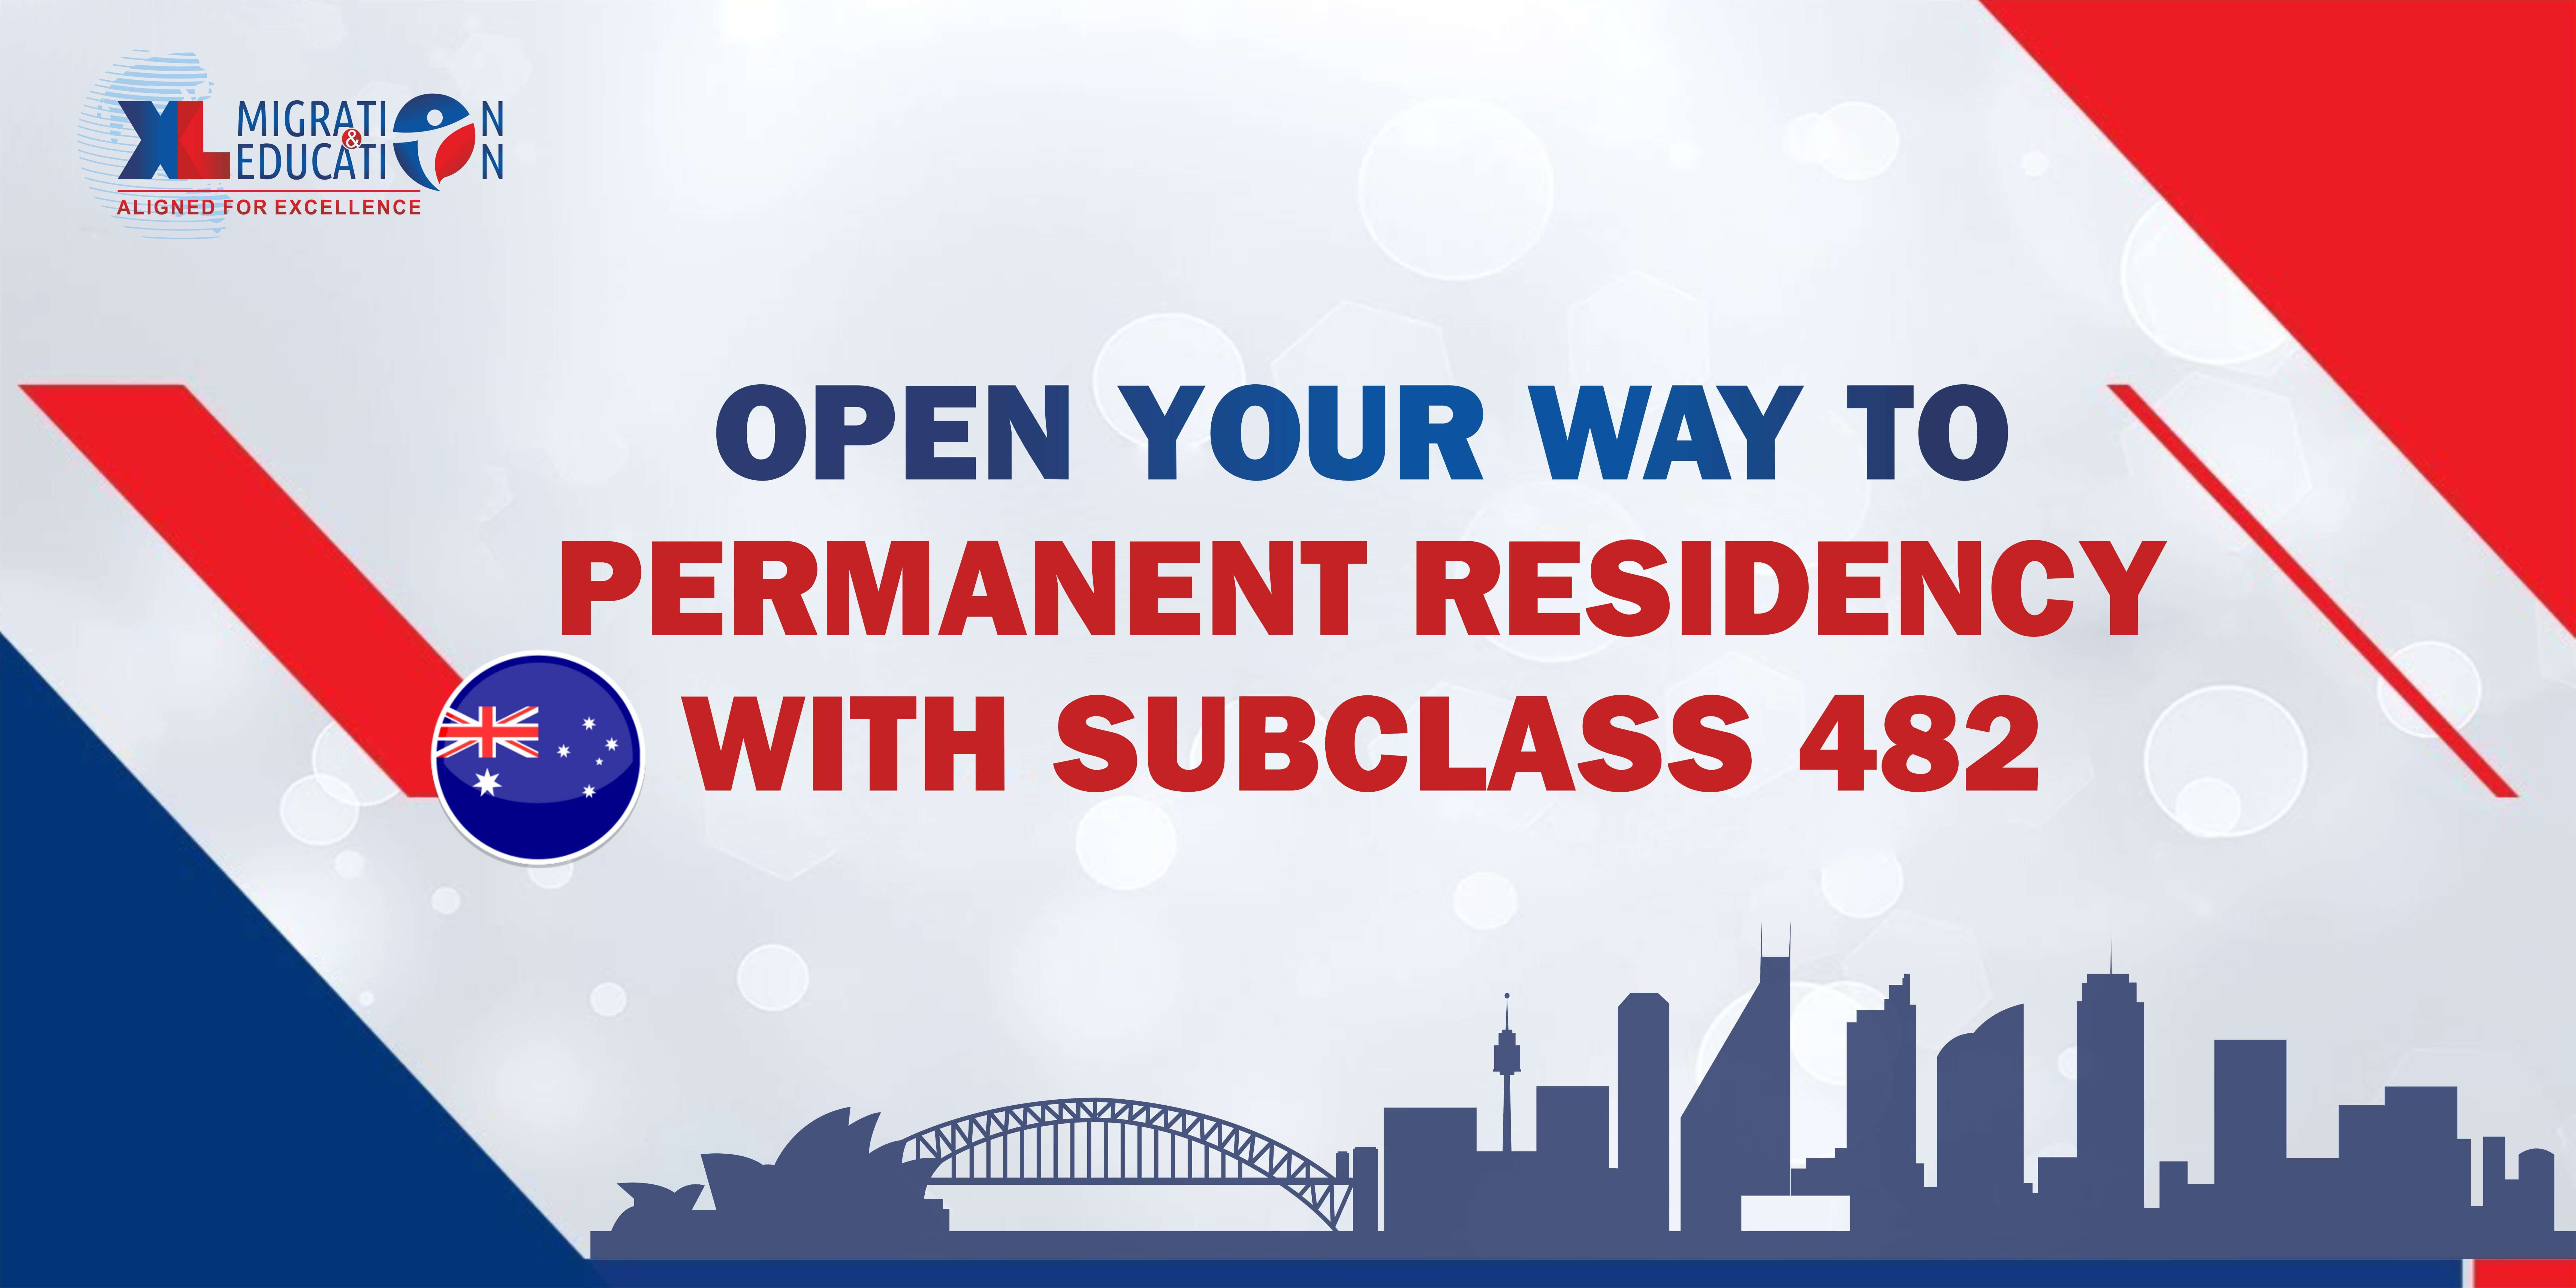 Open your way to Permanent Residency with subclass 482